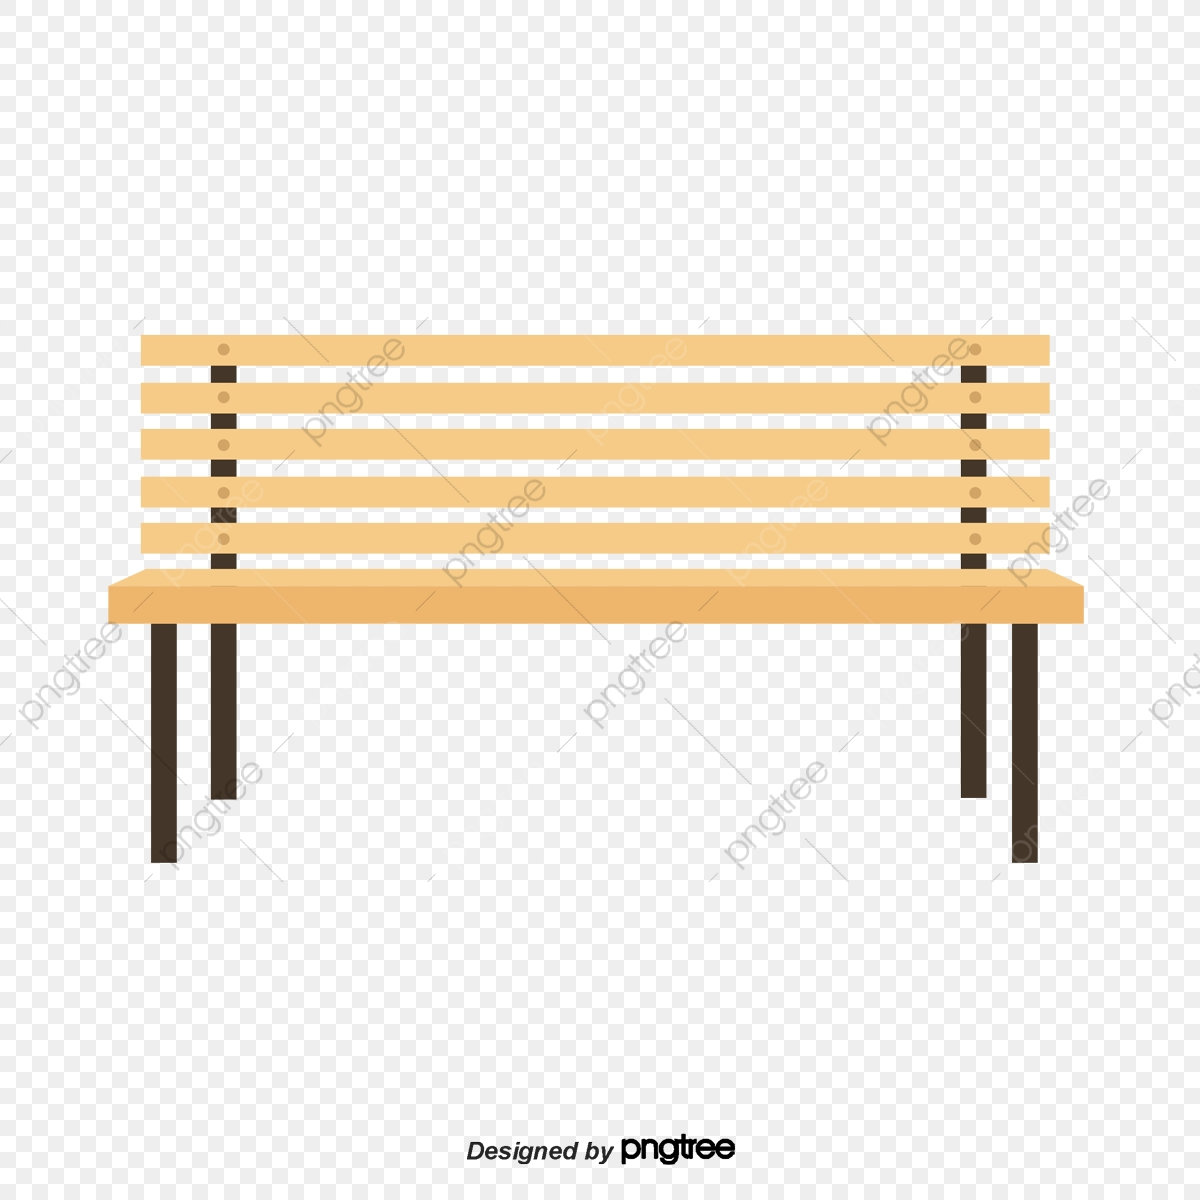 A Wooden Bench In The Park, Park, Chair, Woodiness PNG Transparent.